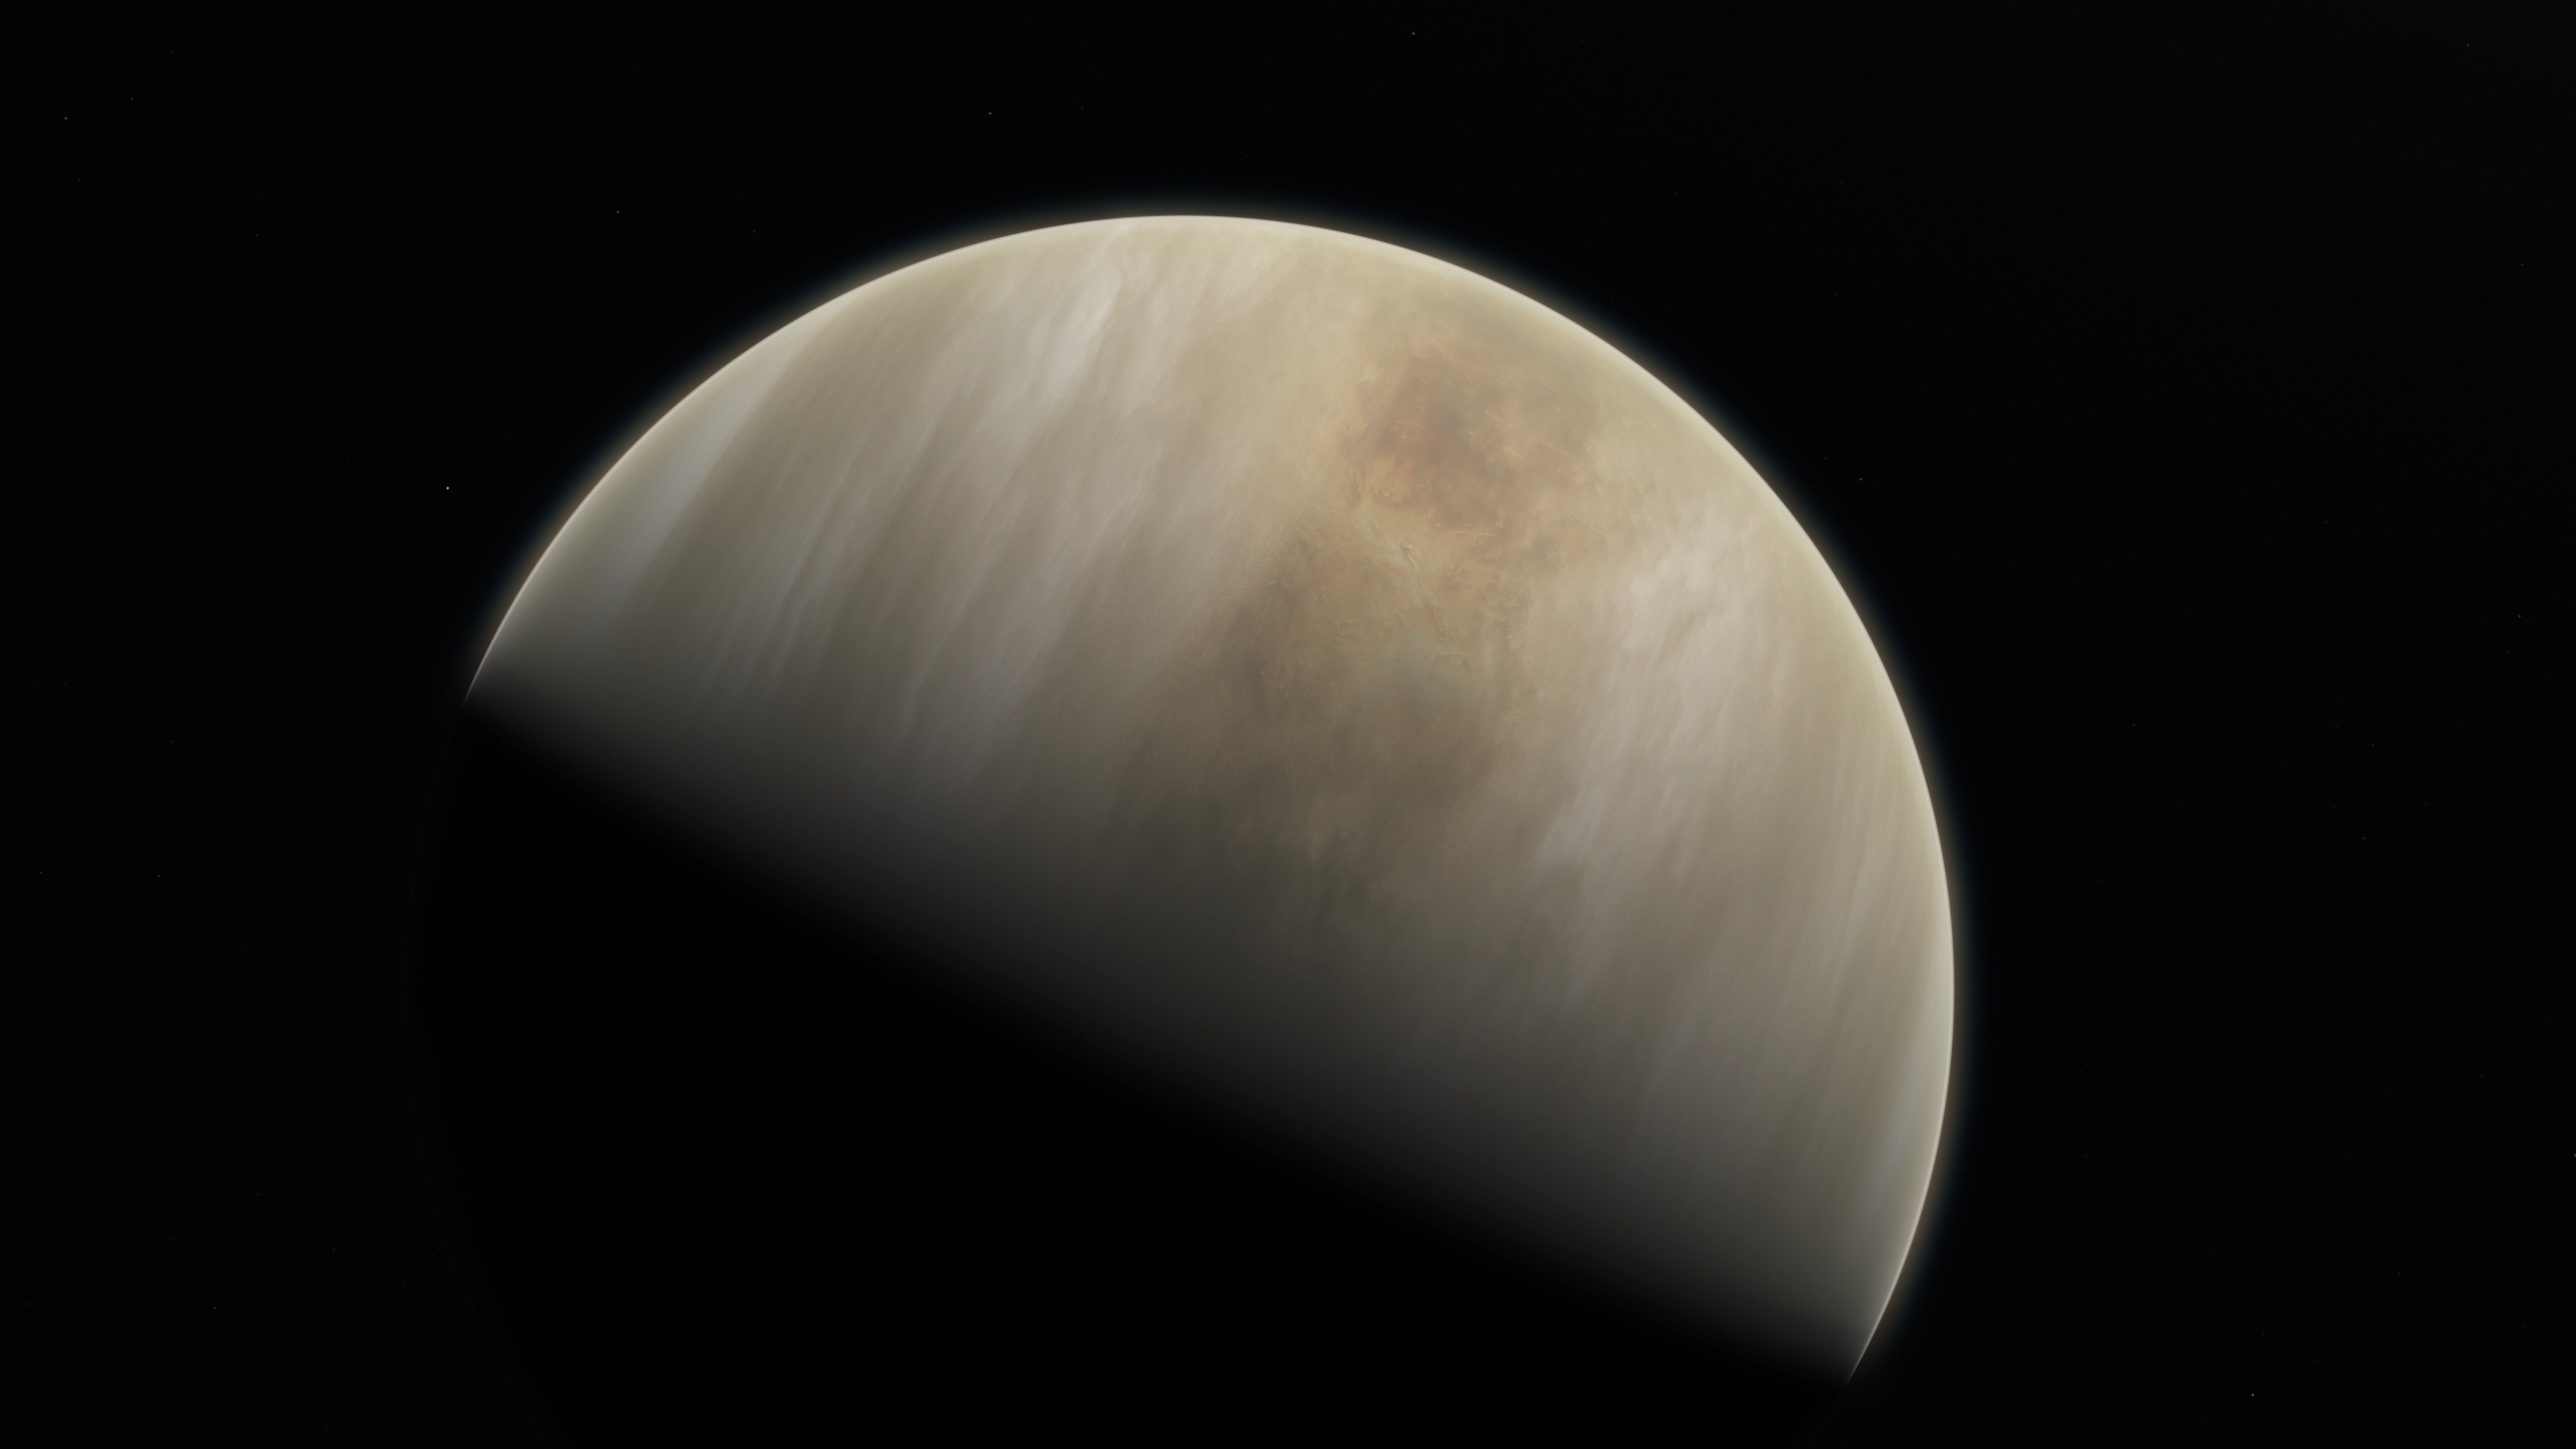 Prospects for Life on Venus